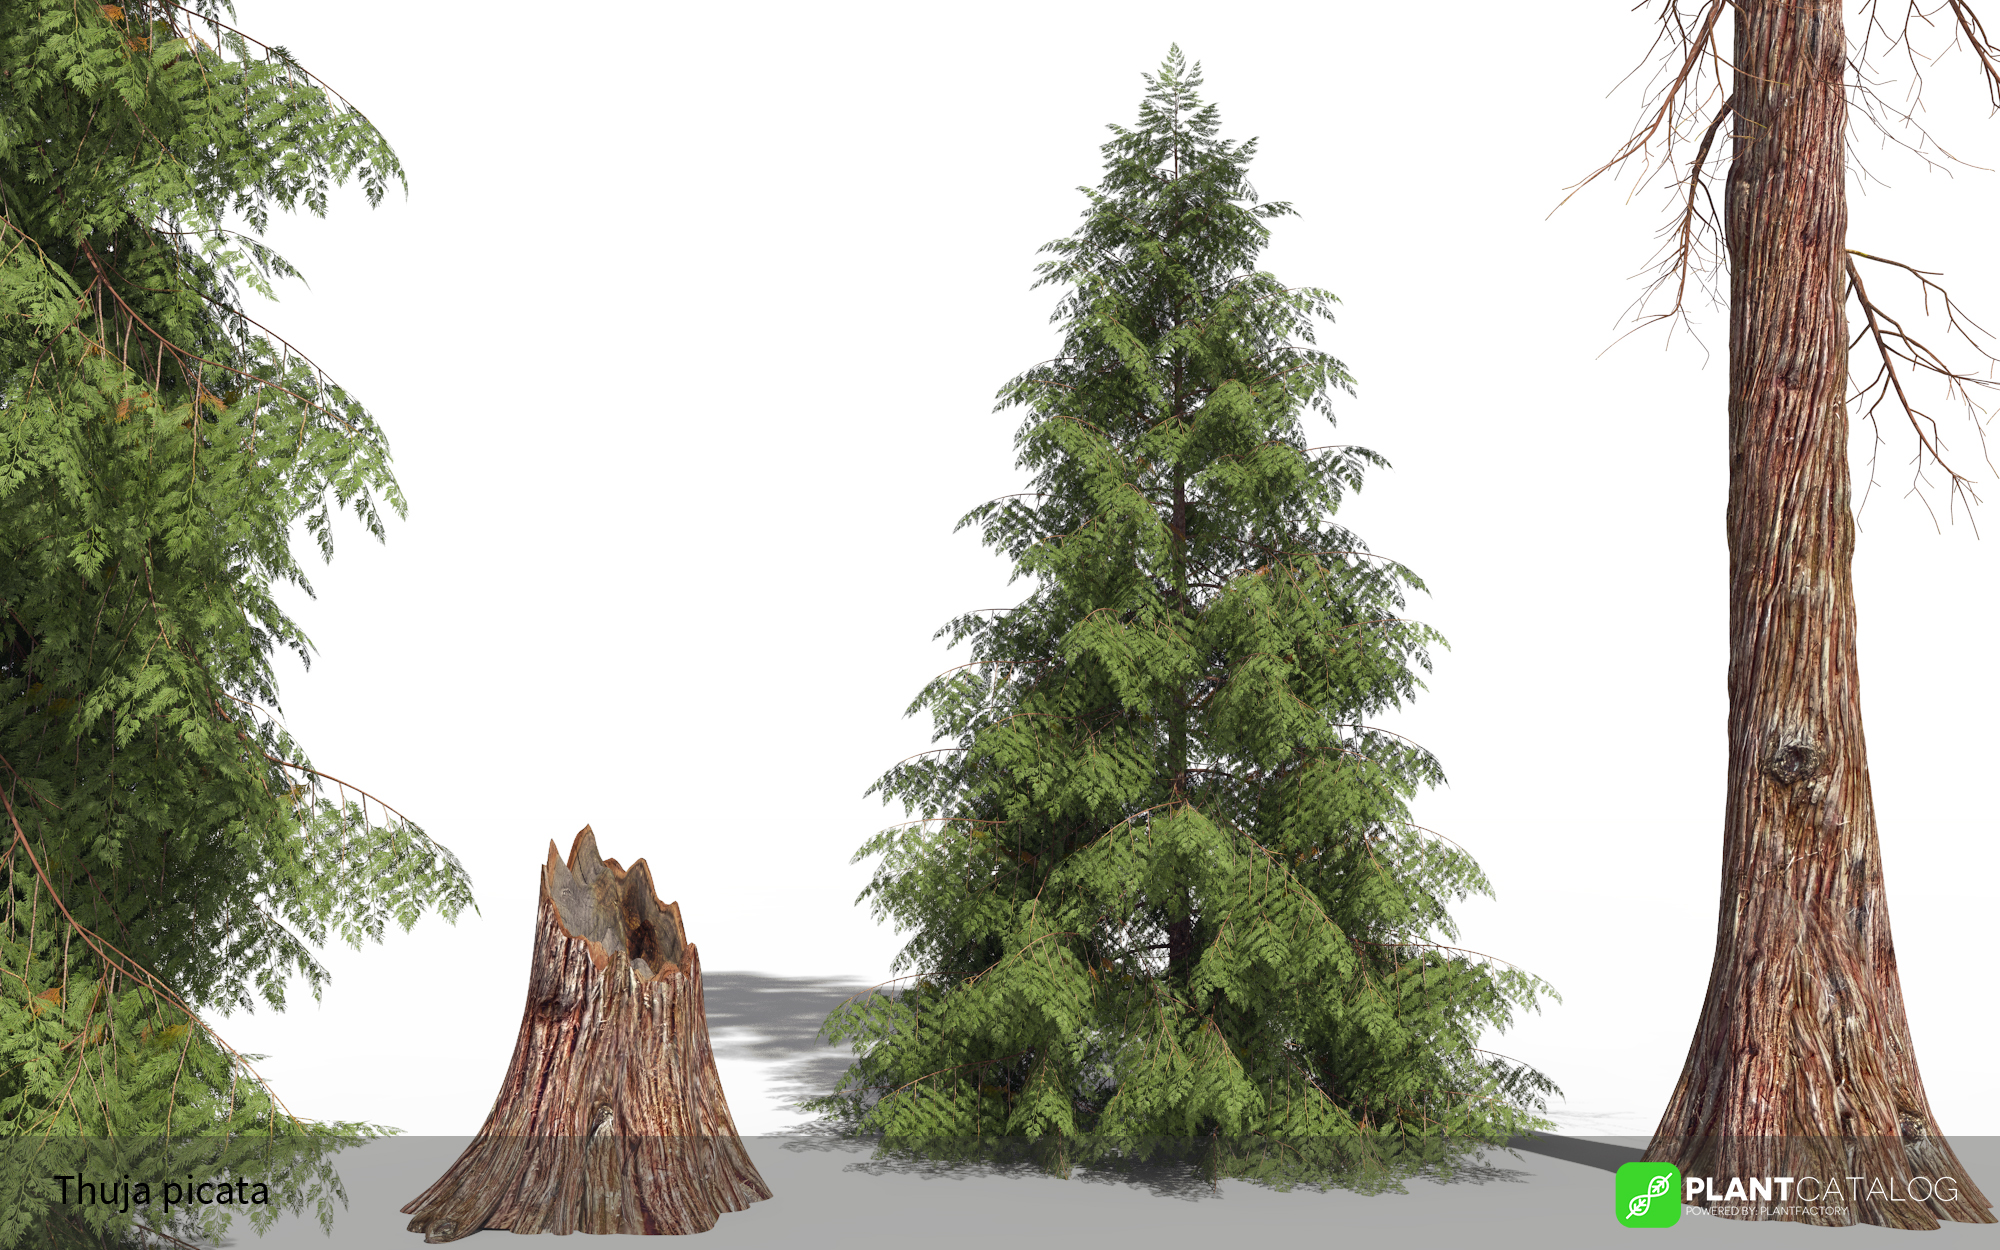 3D model of the Western red cedar - Thuja plicata - from the PlantCatalog, rendered in VUE